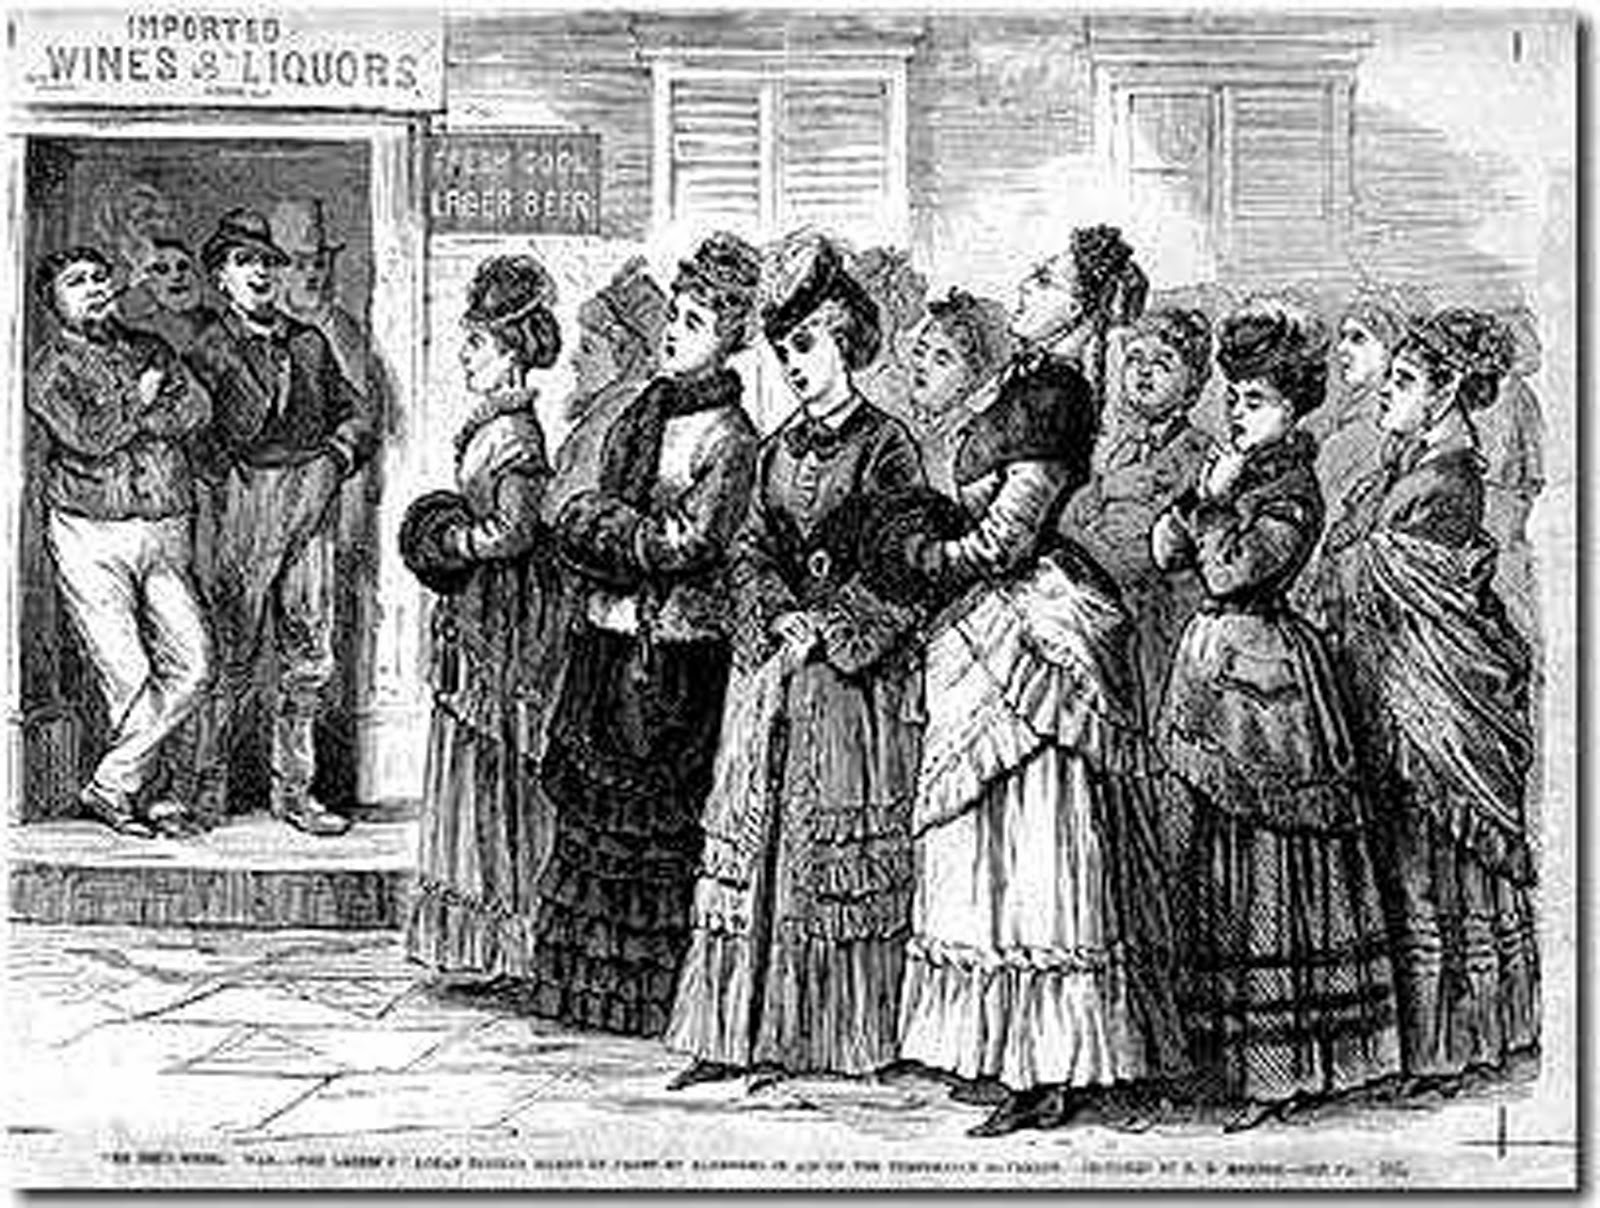 Erin's Escape: The Women's Temperance Movement and Prohibition